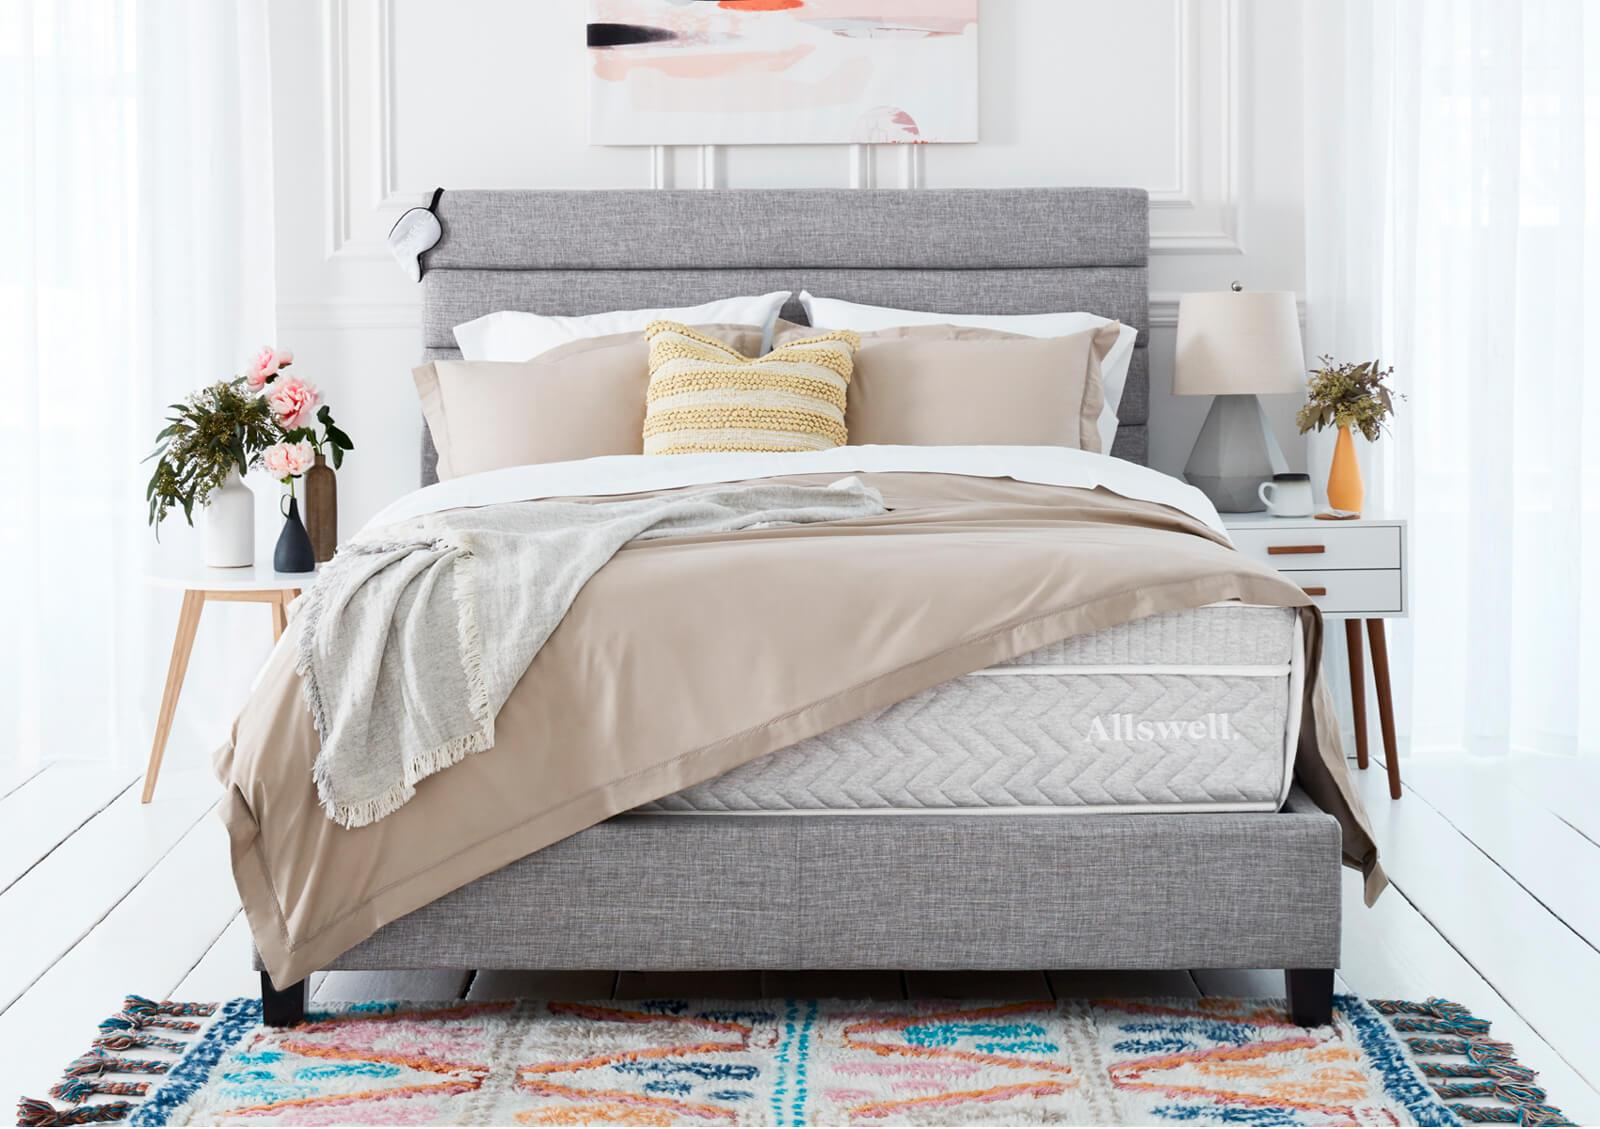 Win a Allswell Supreme Mattress! Giveaway Image